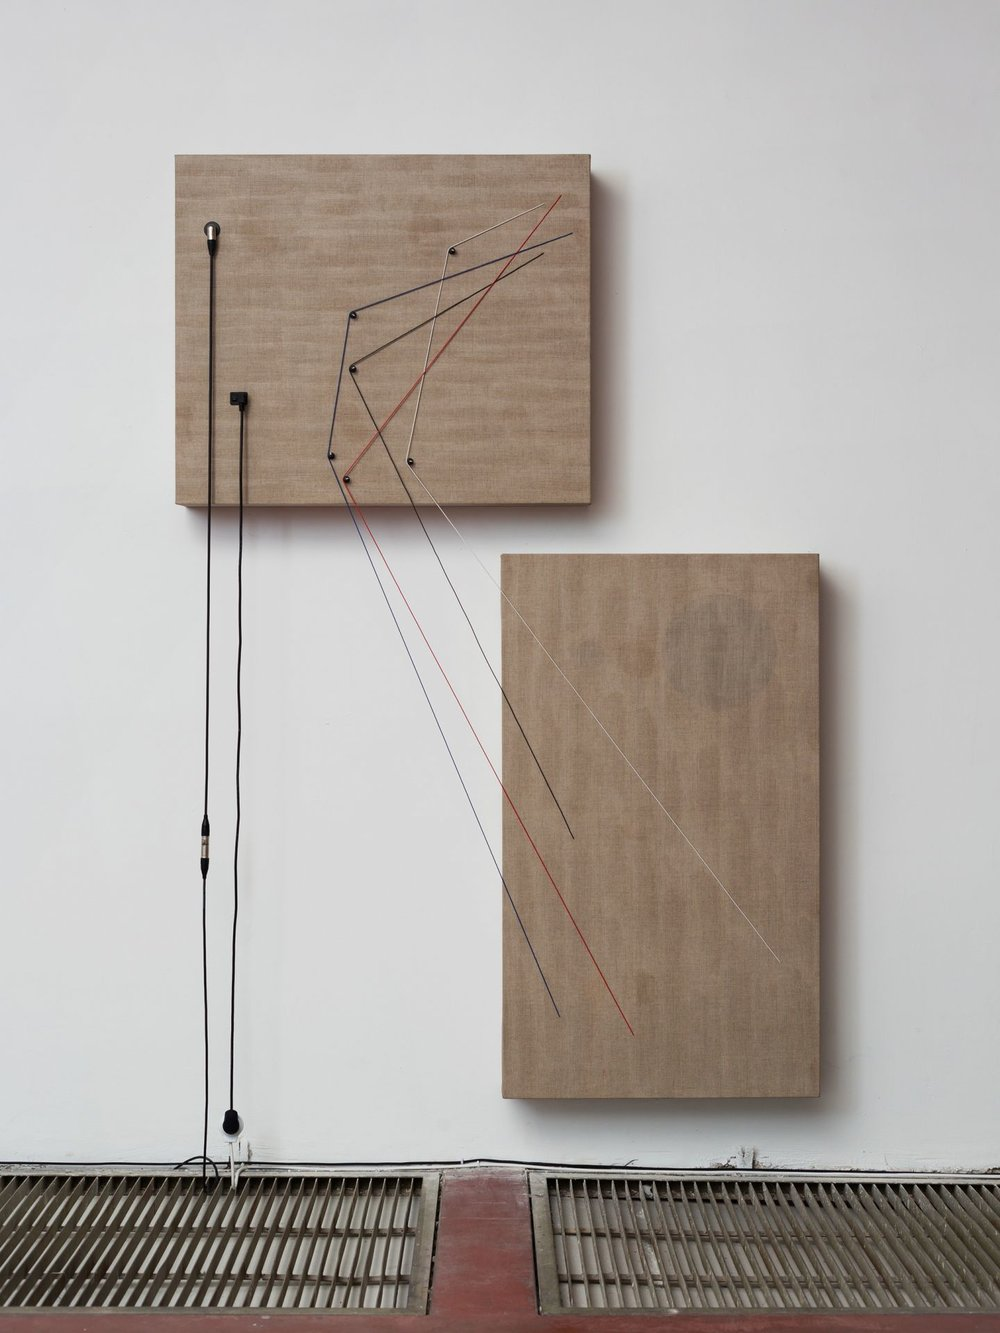 Transition , 2016, Wood, canvas, electronics, cables, knobs, speakers, 87 4/5 × 59 4/5 × 6 1/2""